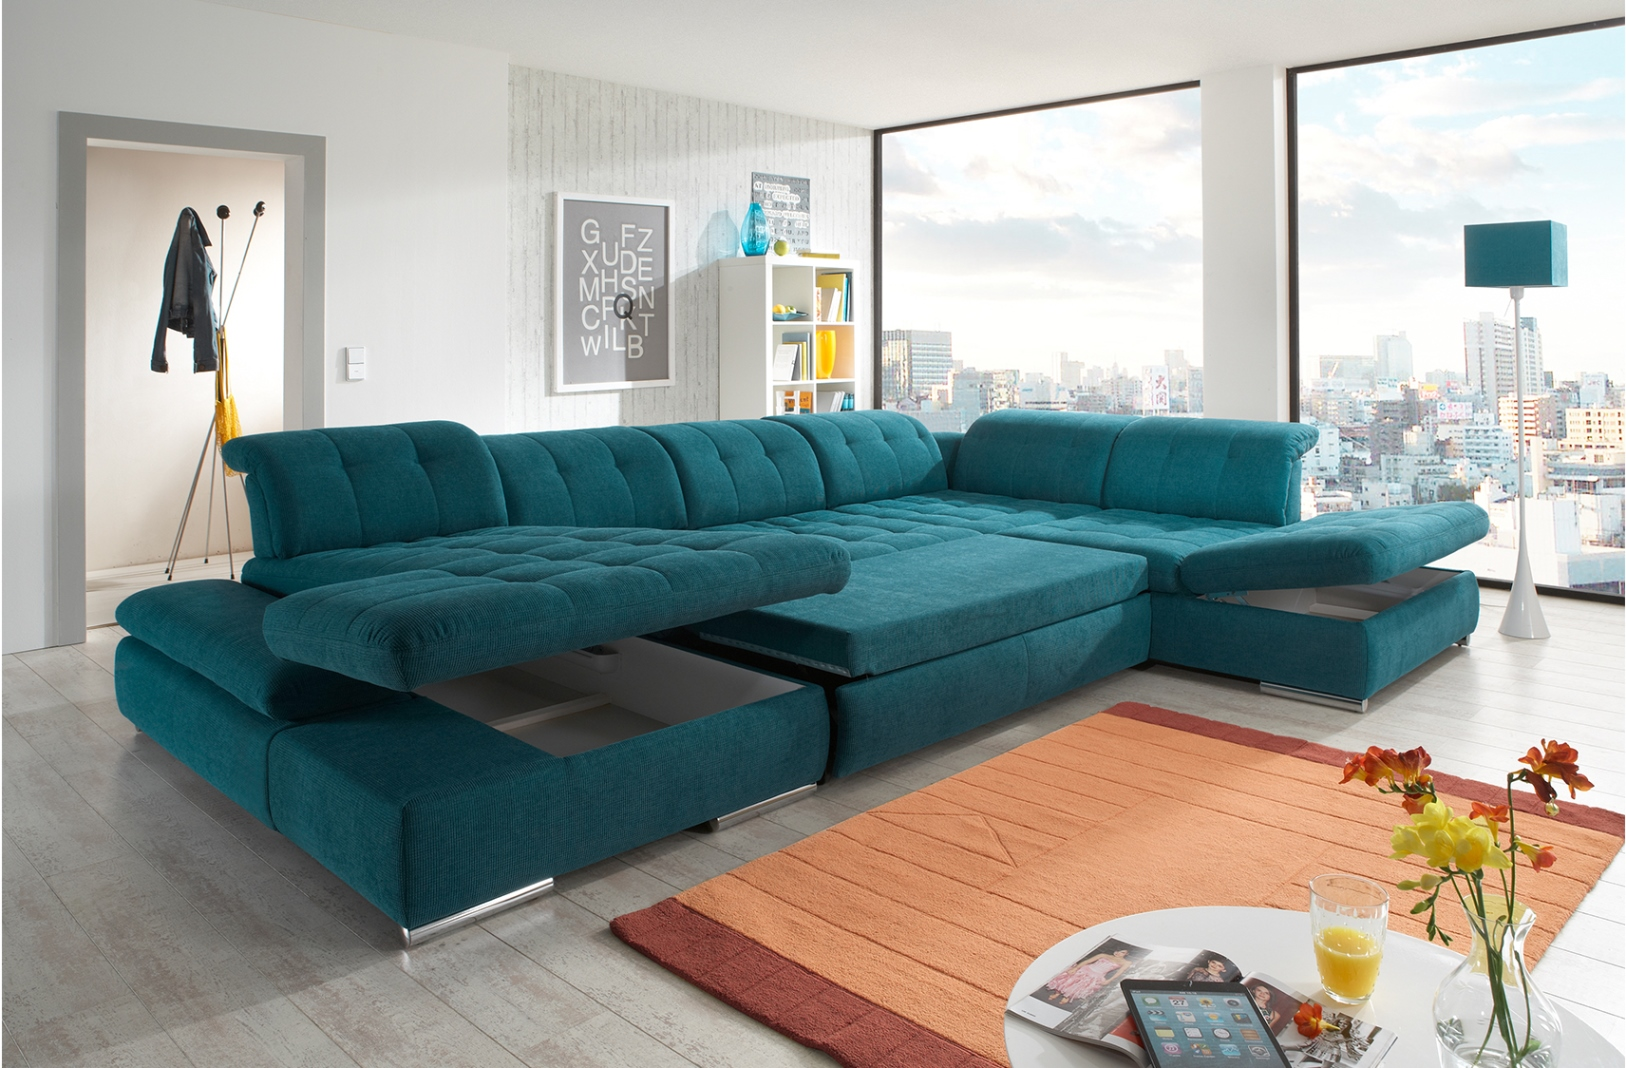 Double Chaise Sectional for Complete and Perfect Welcoming Living Room : HomesFeed